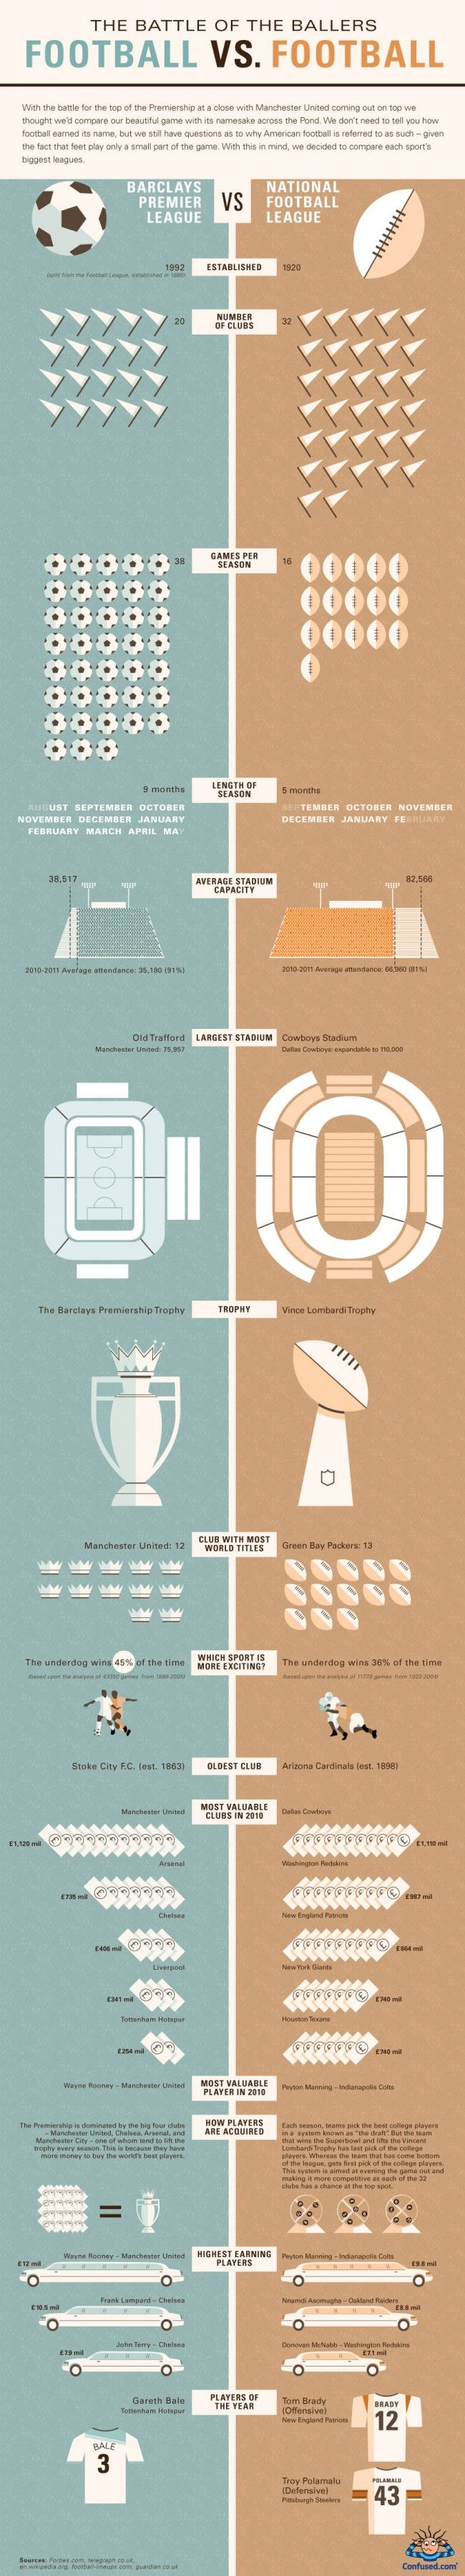 Learn more about the many differences between soccer and football in this infographic: